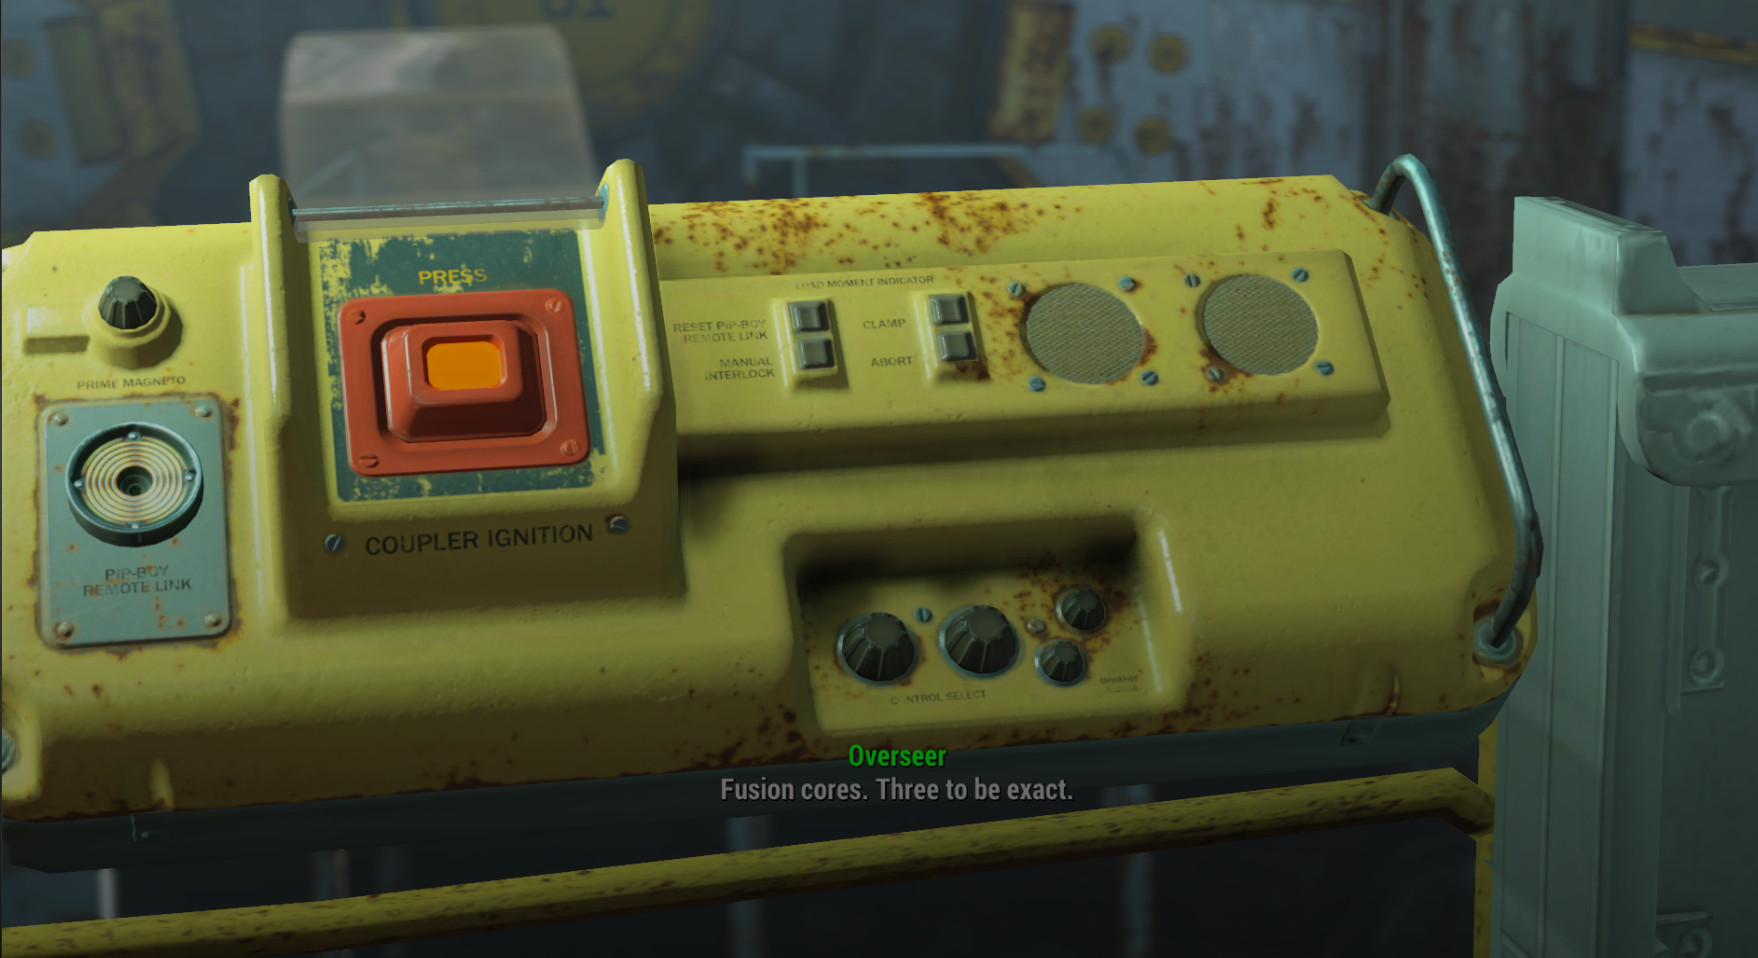 Fallout 4 Guide - Finding Vault 81 and getting the Syringe Rifle